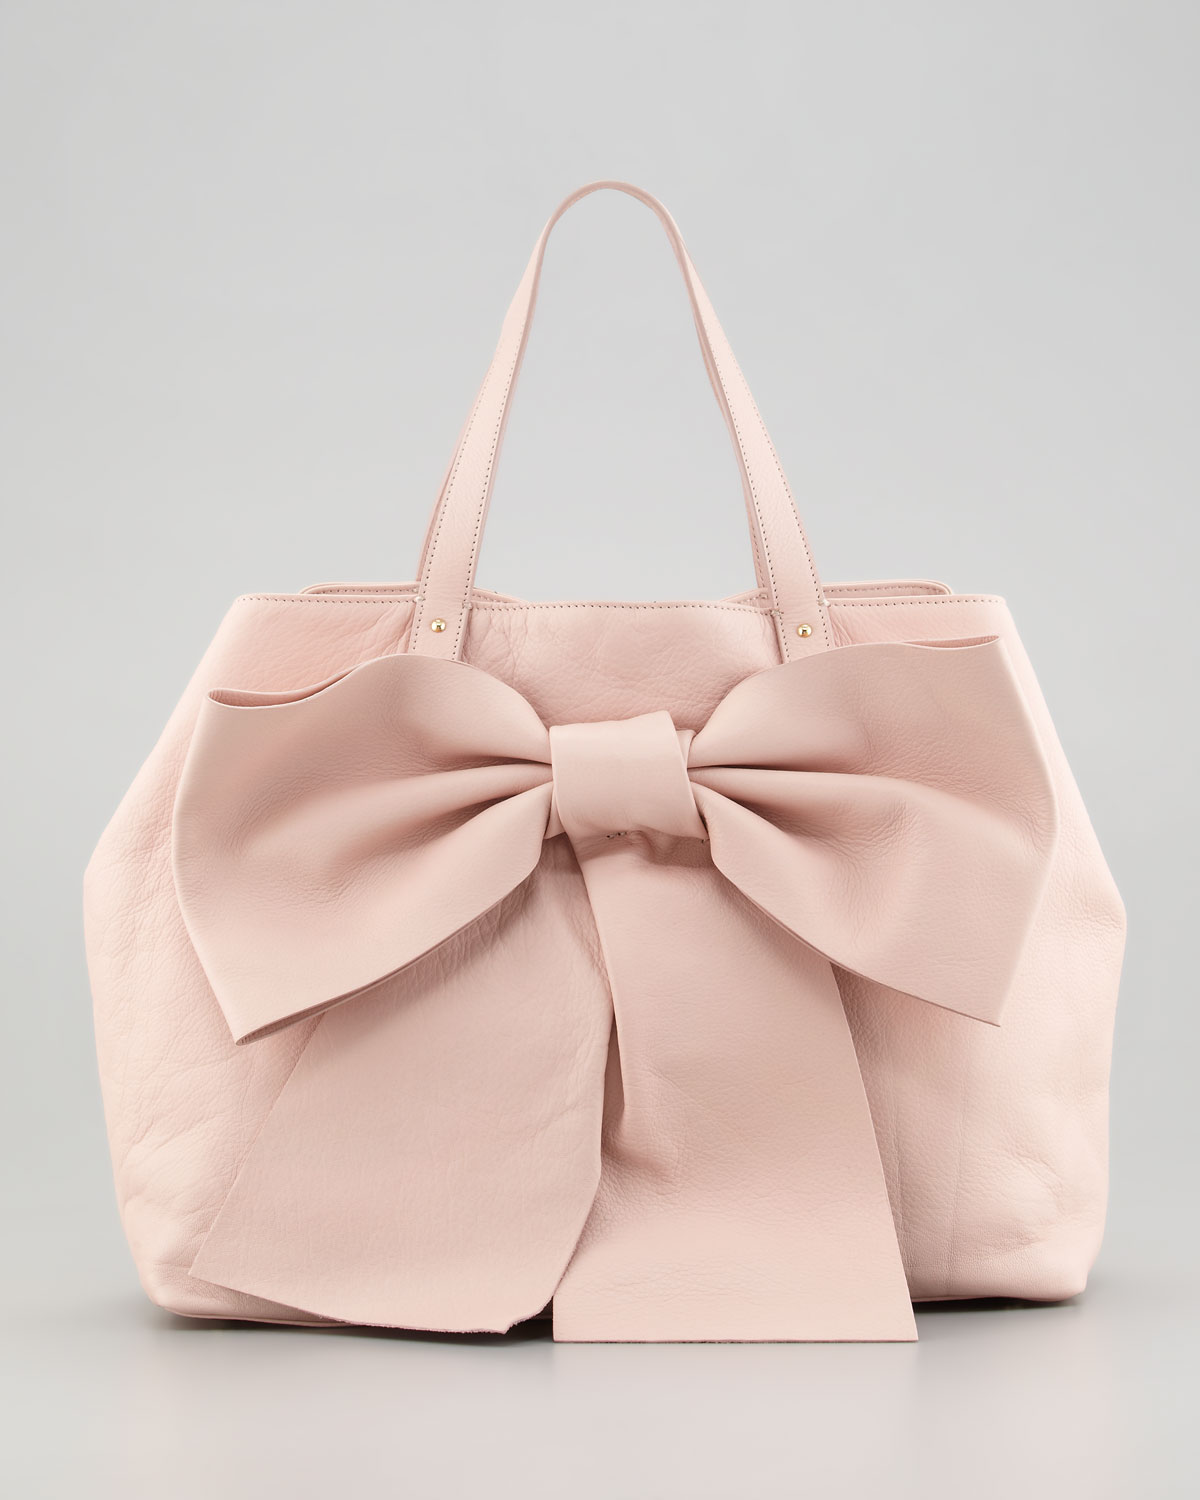 Red valentino Calfskin Bow Tote in Pink | Lyst